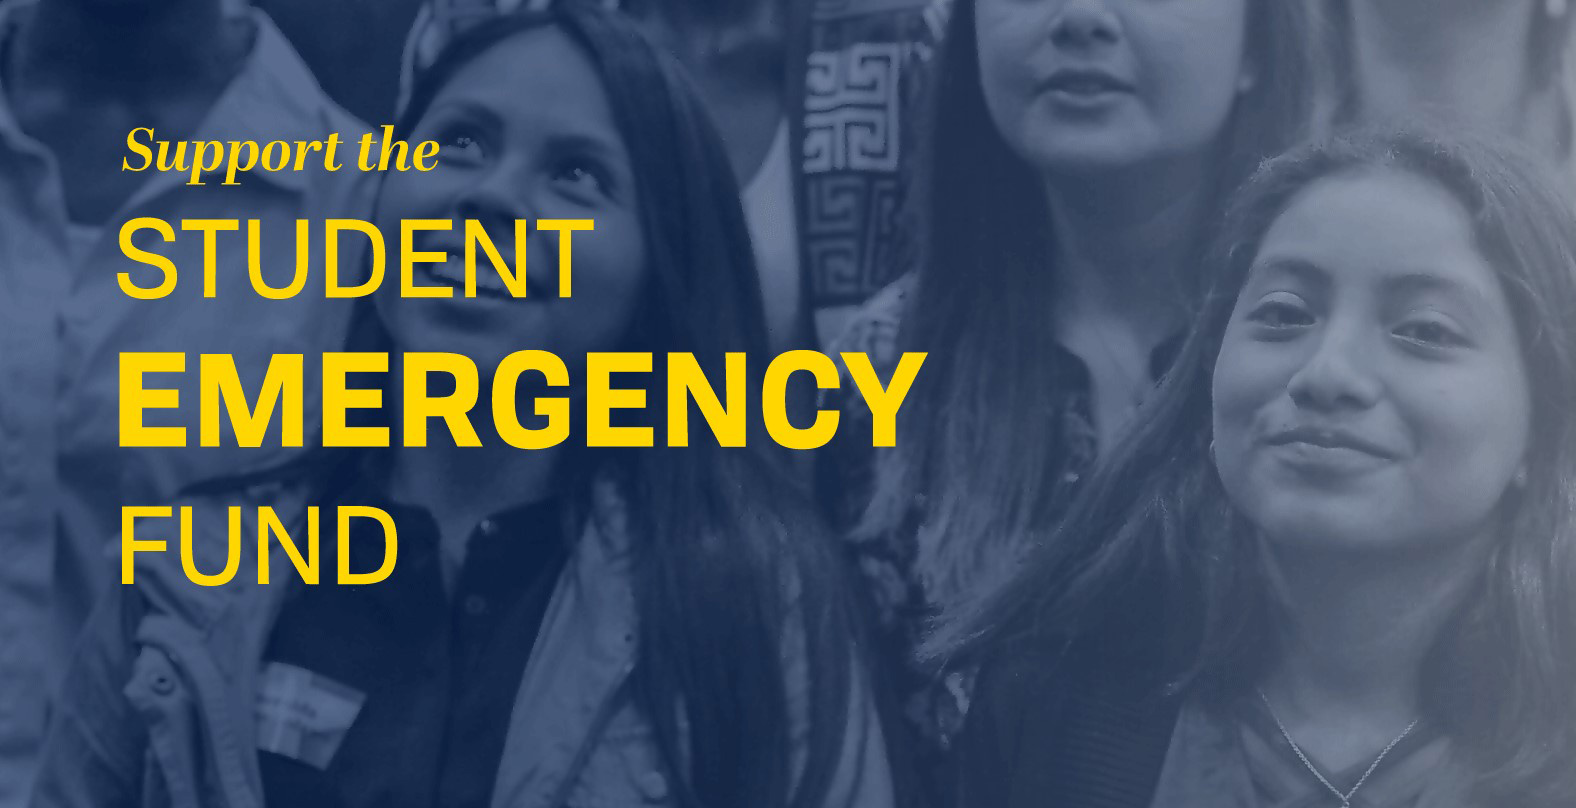 Support the Student Emergency Fund